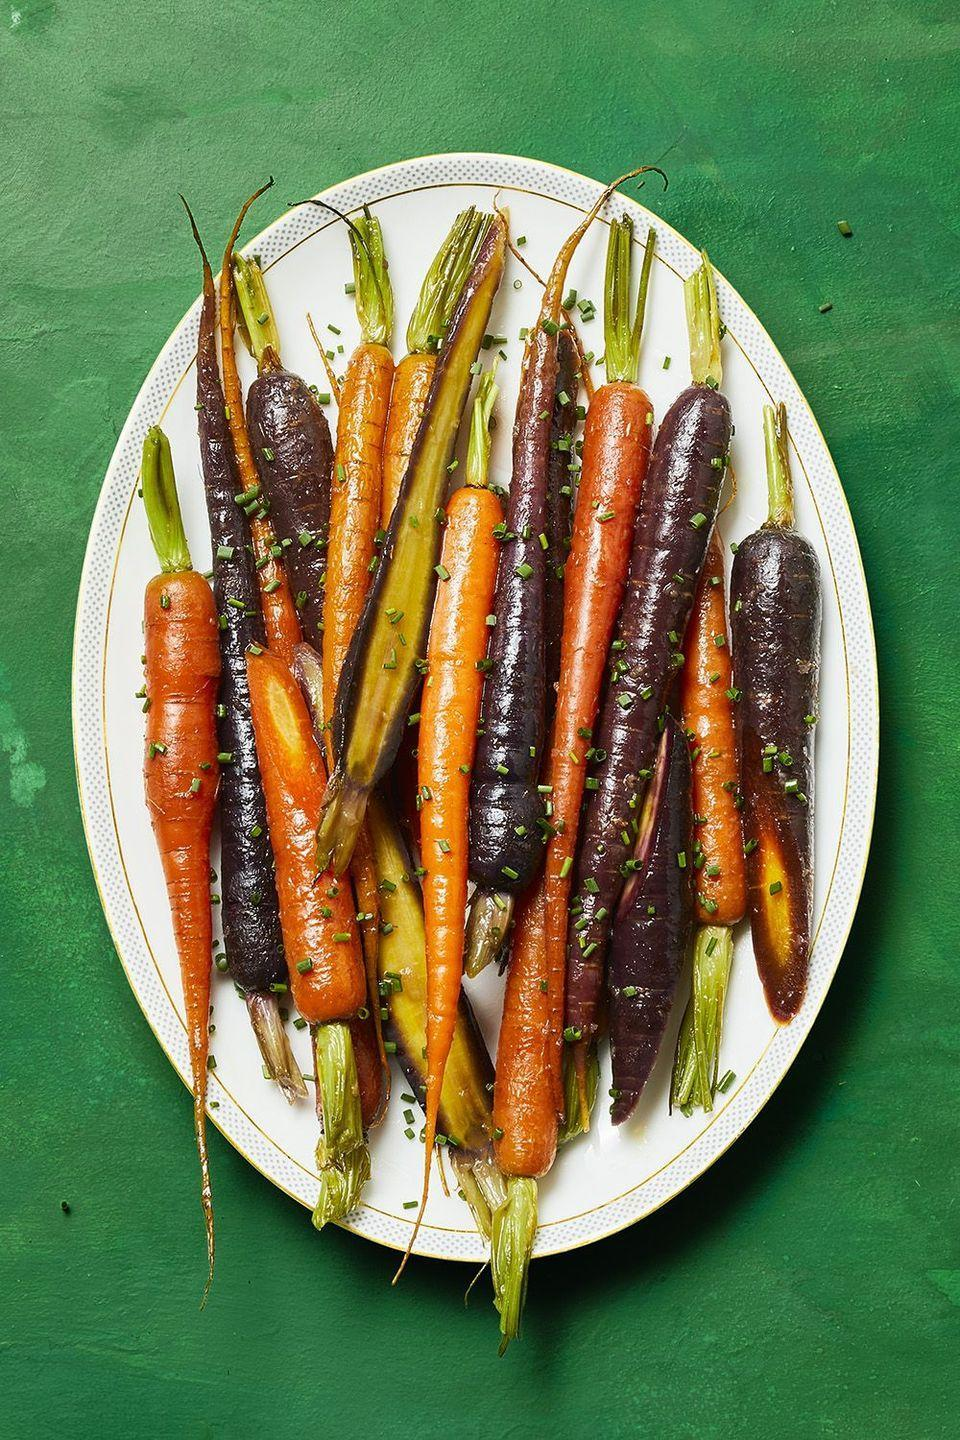 """<p>Fresh ginger and honey make this easy side dish a spicy-sweet knockout. Bonus: It only takes 20 minutes. </p><p><strong><em><a href=""""https://www.womansday.com/food-recipes/a34146536/honey-glazed-carrots-recipe/"""" rel=""""nofollow noopener"""" target=""""_blank"""" data-ylk=""""slk:Get the Honey-Glazed Carrots recipe."""" class=""""link rapid-noclick-resp"""">Get the Honey-Glazed Carrots recipe. </a></em></strong></p>"""